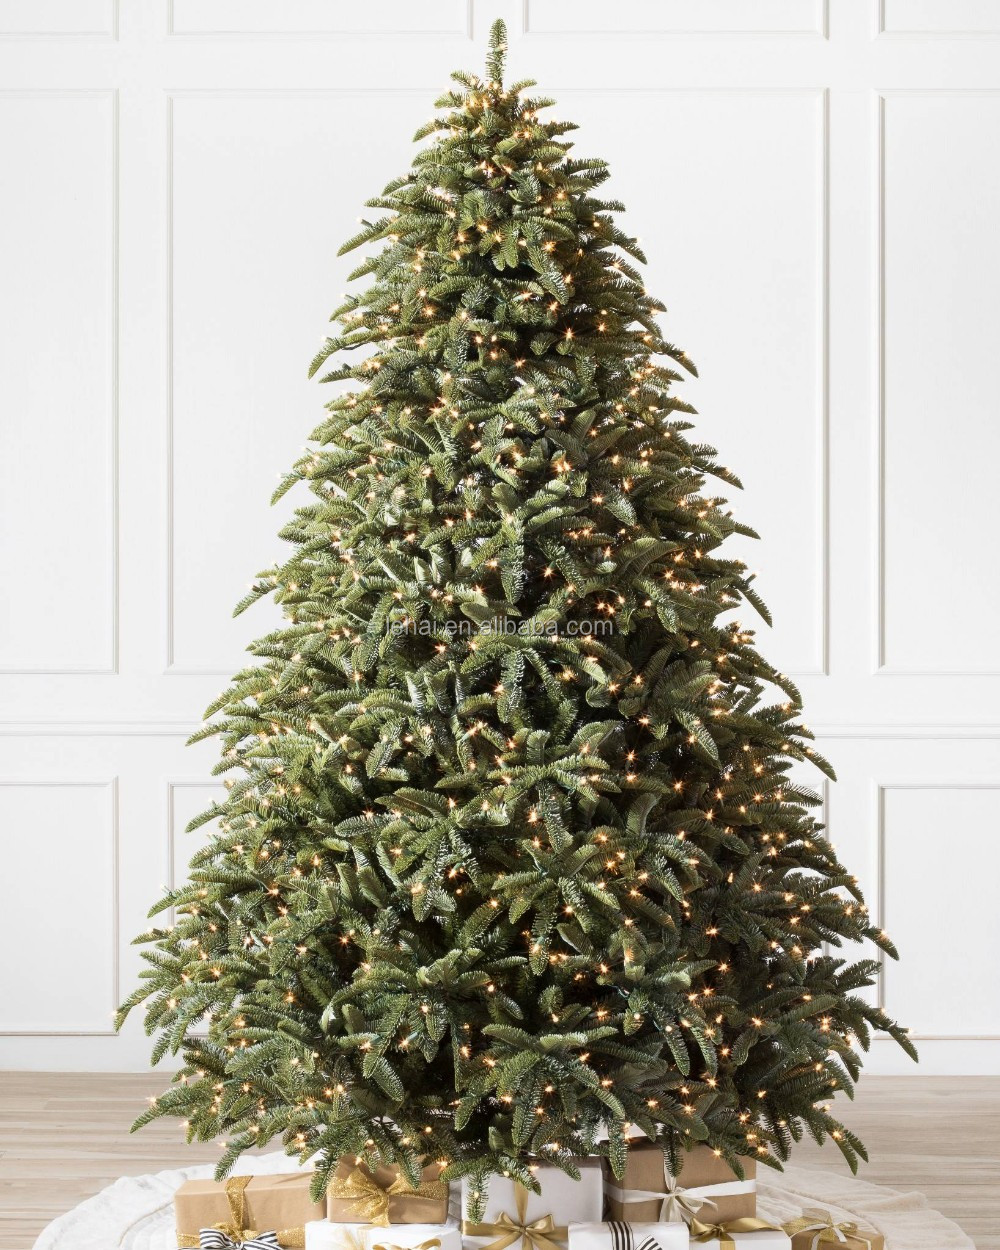 Xmas Tree White Pink Blue Green Color Customized Design Party Home Decorations Pre Lit Outside Christmas Tree Artificial Buy Christmas Artificial Christmas Tree Pre Lit Collapsible Dense Twig Slim Green Giant Christmas Tree